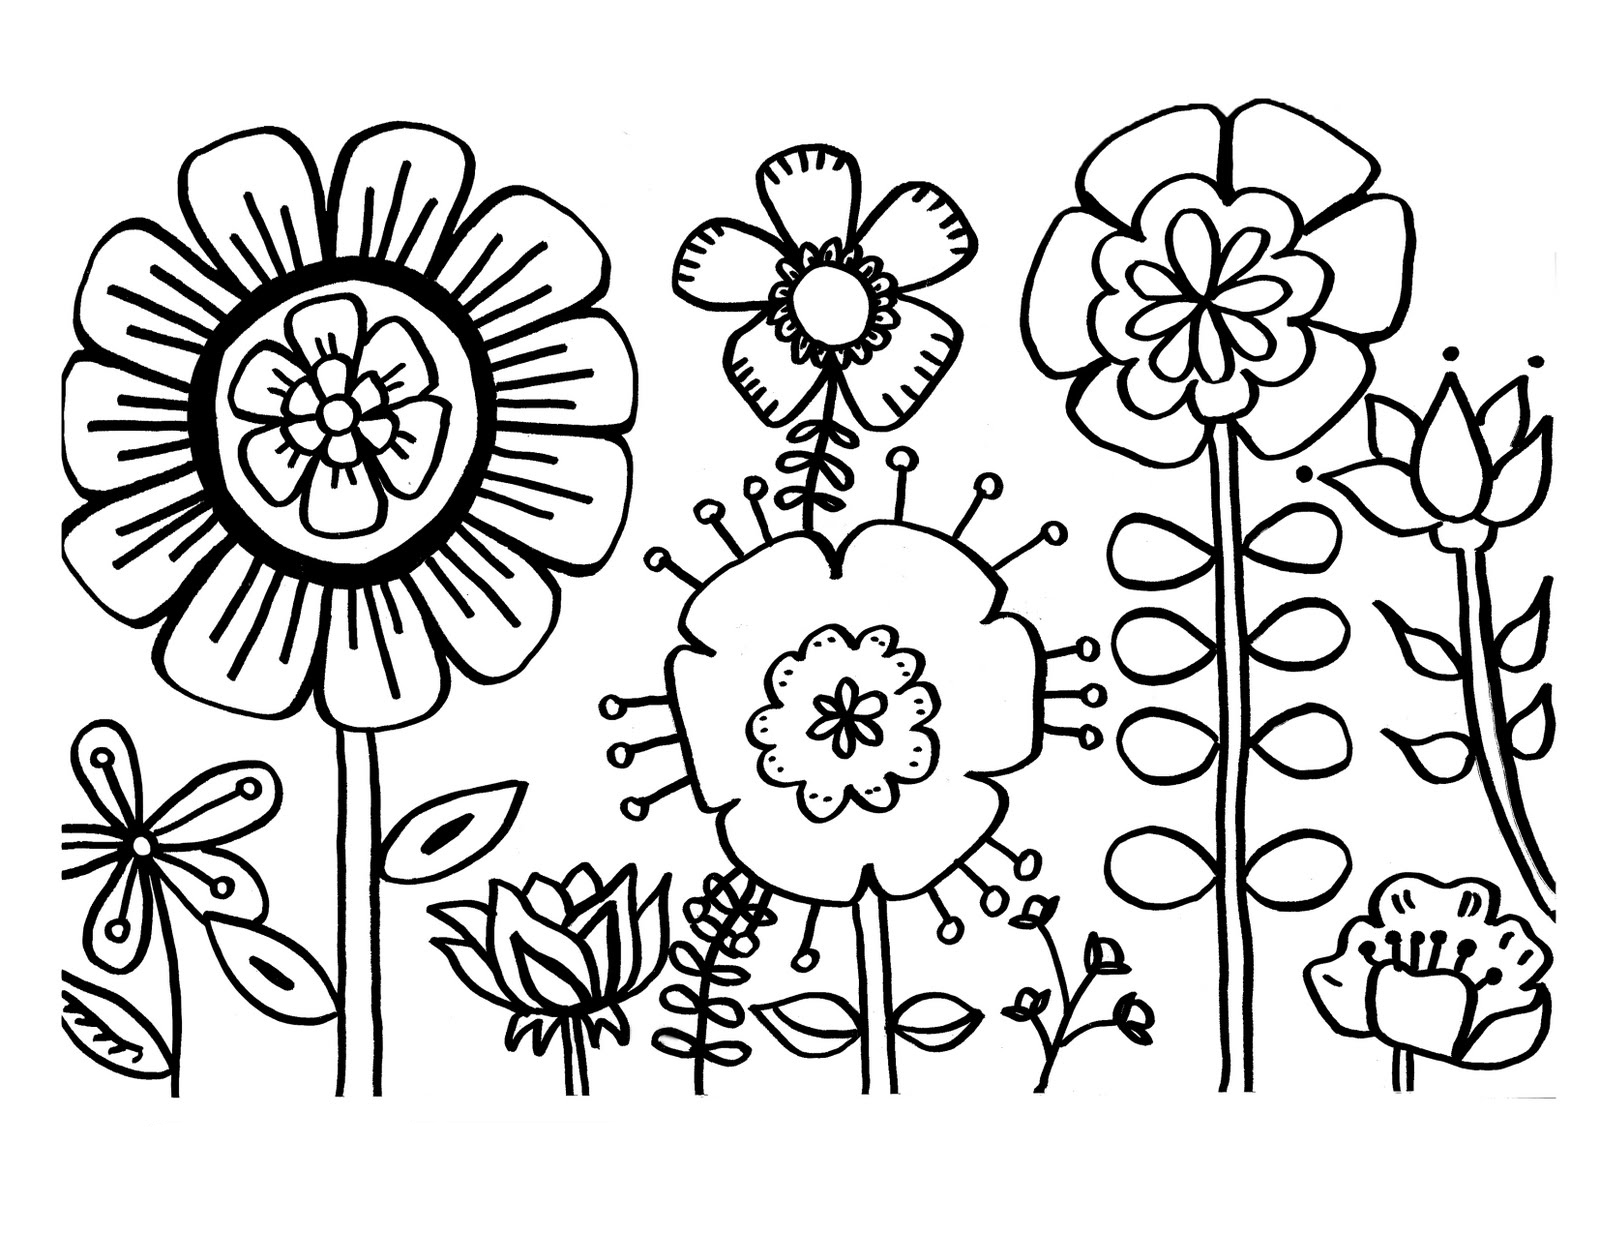 pictures of flowers to color free printables flower coloring printables for kids flowers free color of printables pictures to